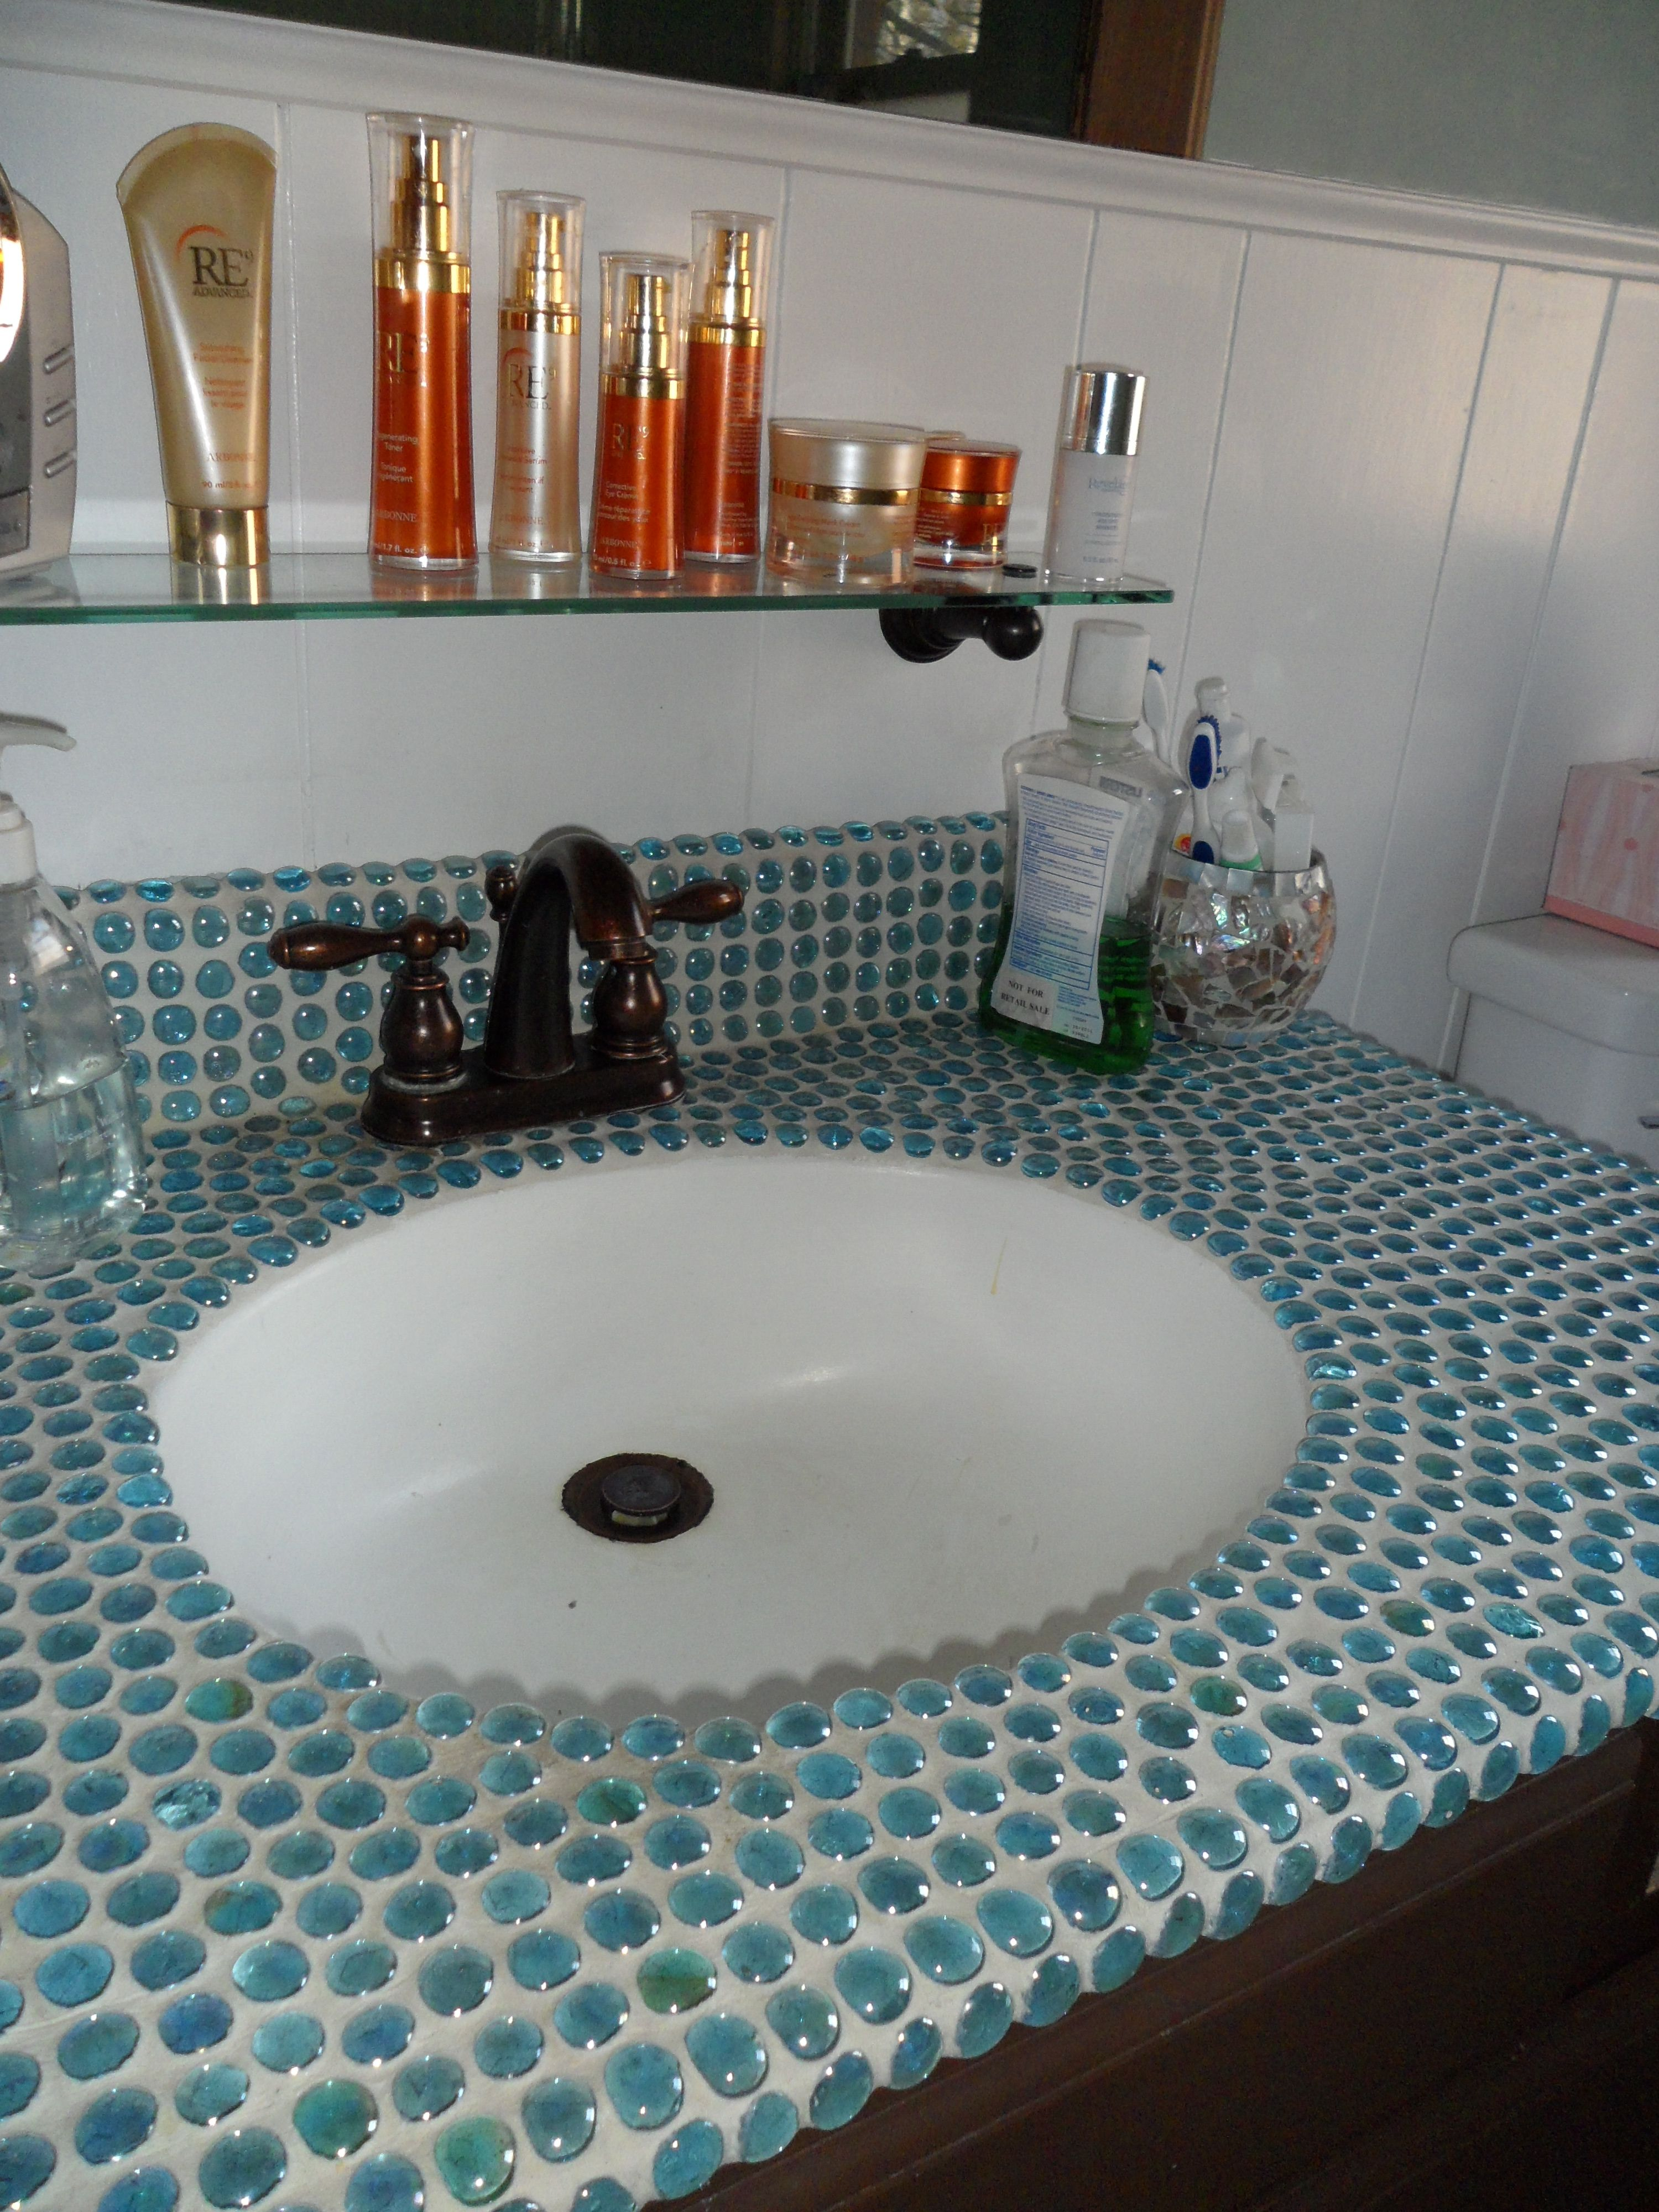 Update Your Countertops By Using Gl Beads From The Hobby Glue Them To An Old Marbelite Vanity Top Grout It Less Then 25 00